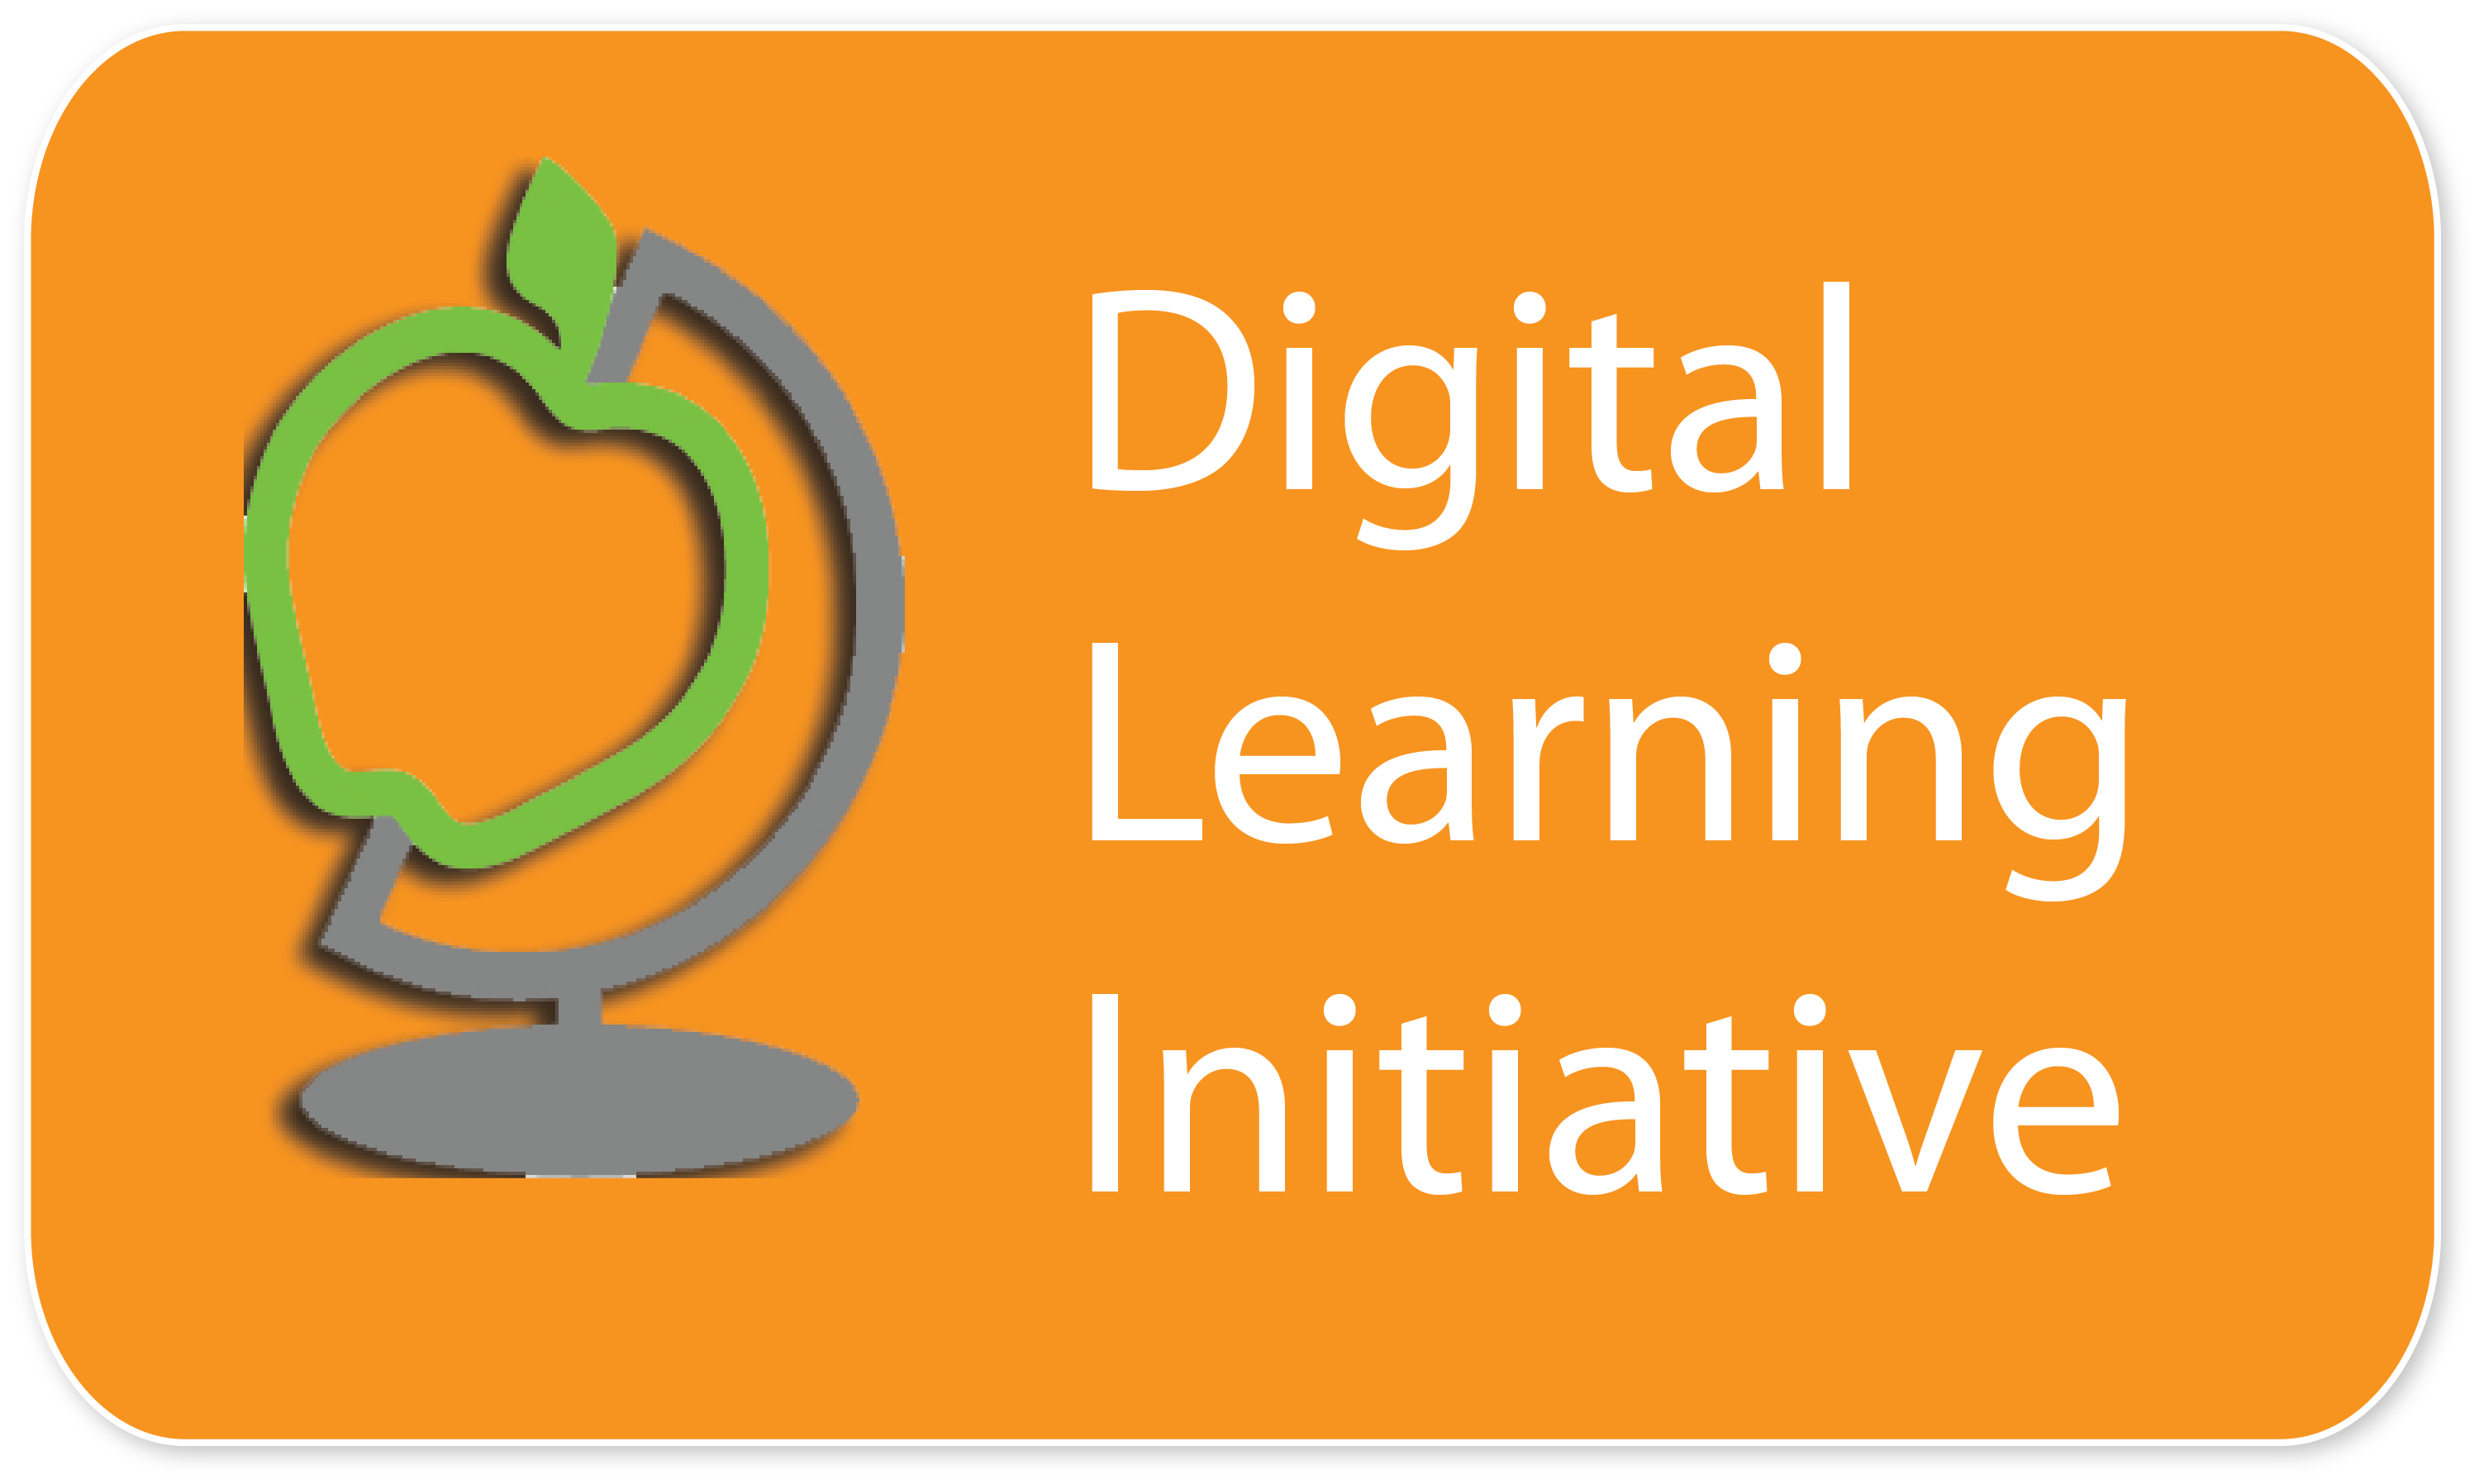 Digital Learning Initiative clipart